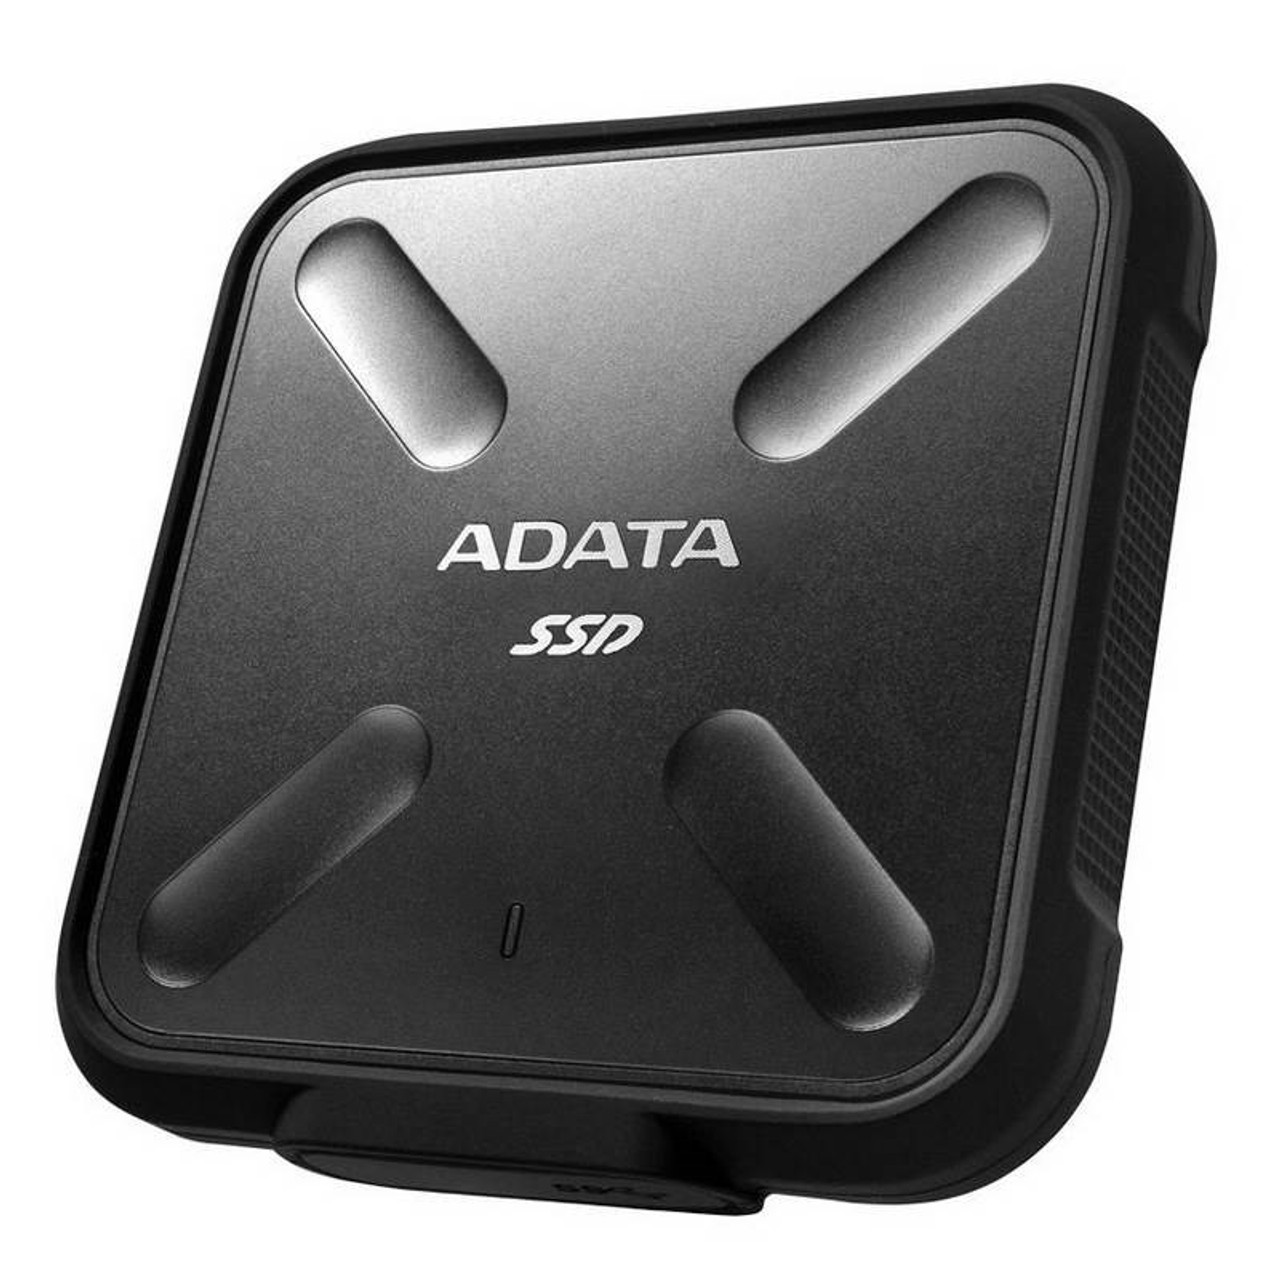 Image for Adata SD700 512GB USB 3.1 Portable External Rugged SSD Hard Drive - Black CX Computer Superstore